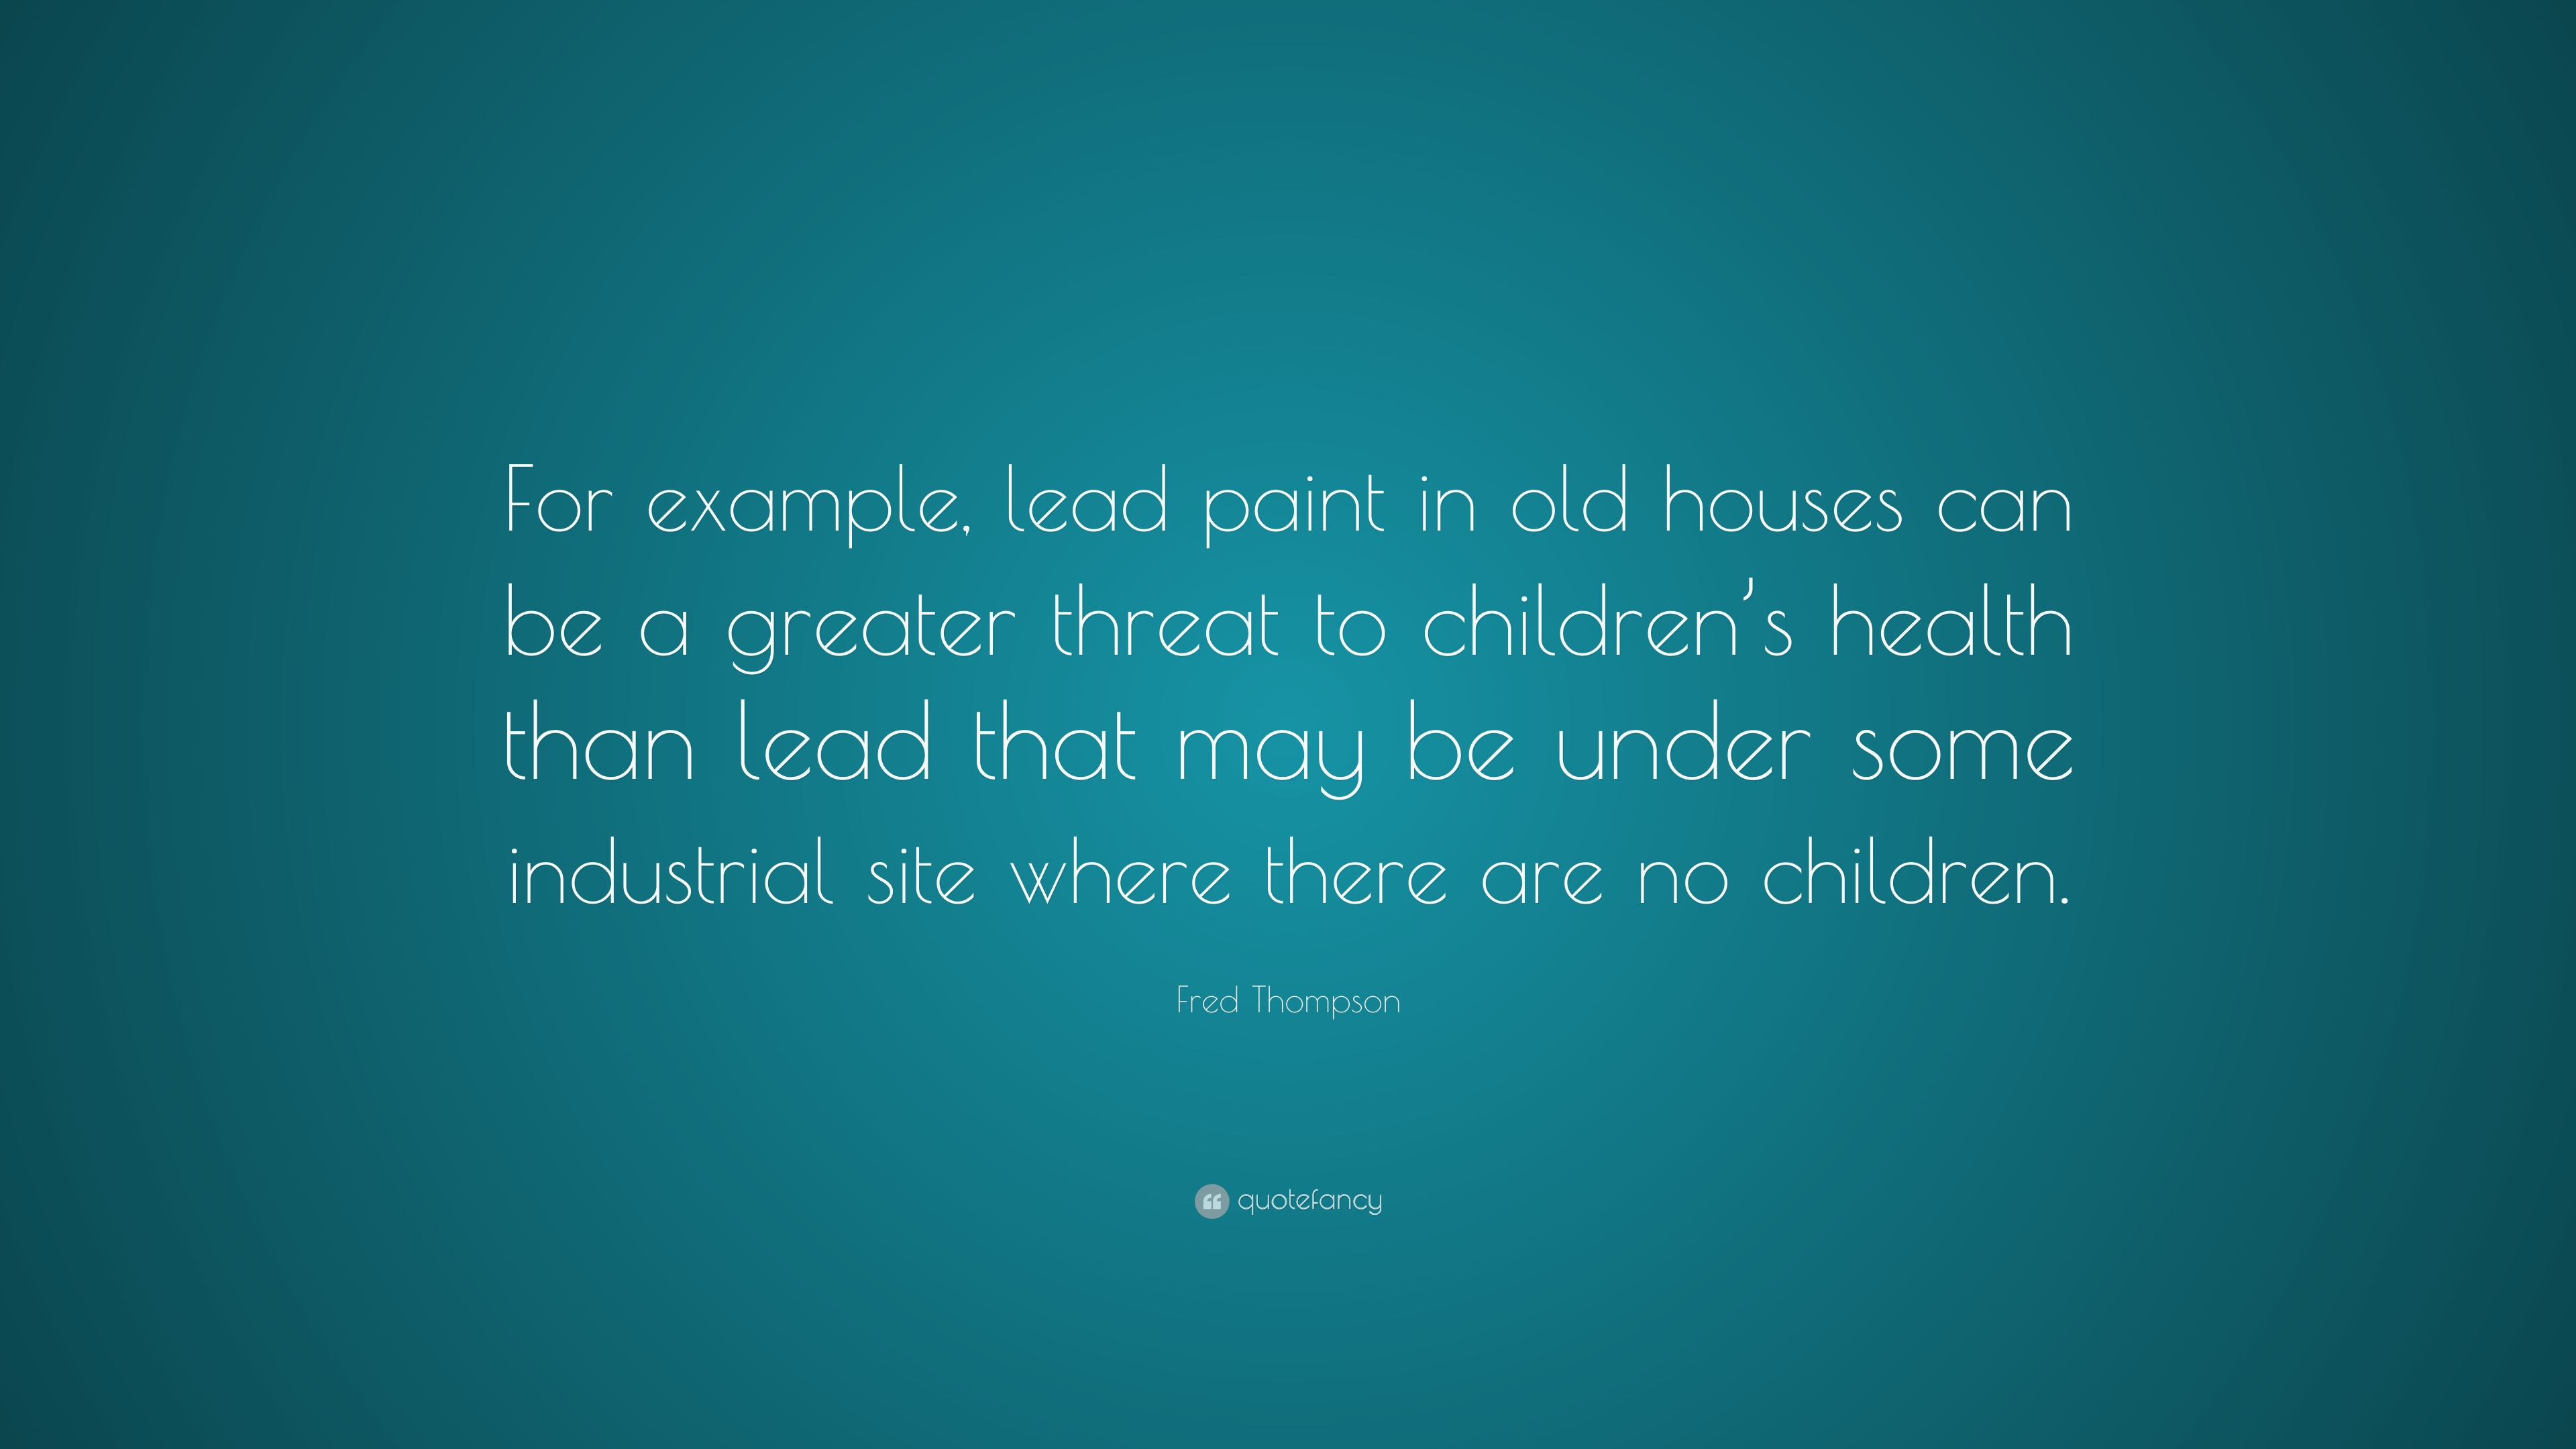 fred thompson quote for example lead paint in old houses can be a